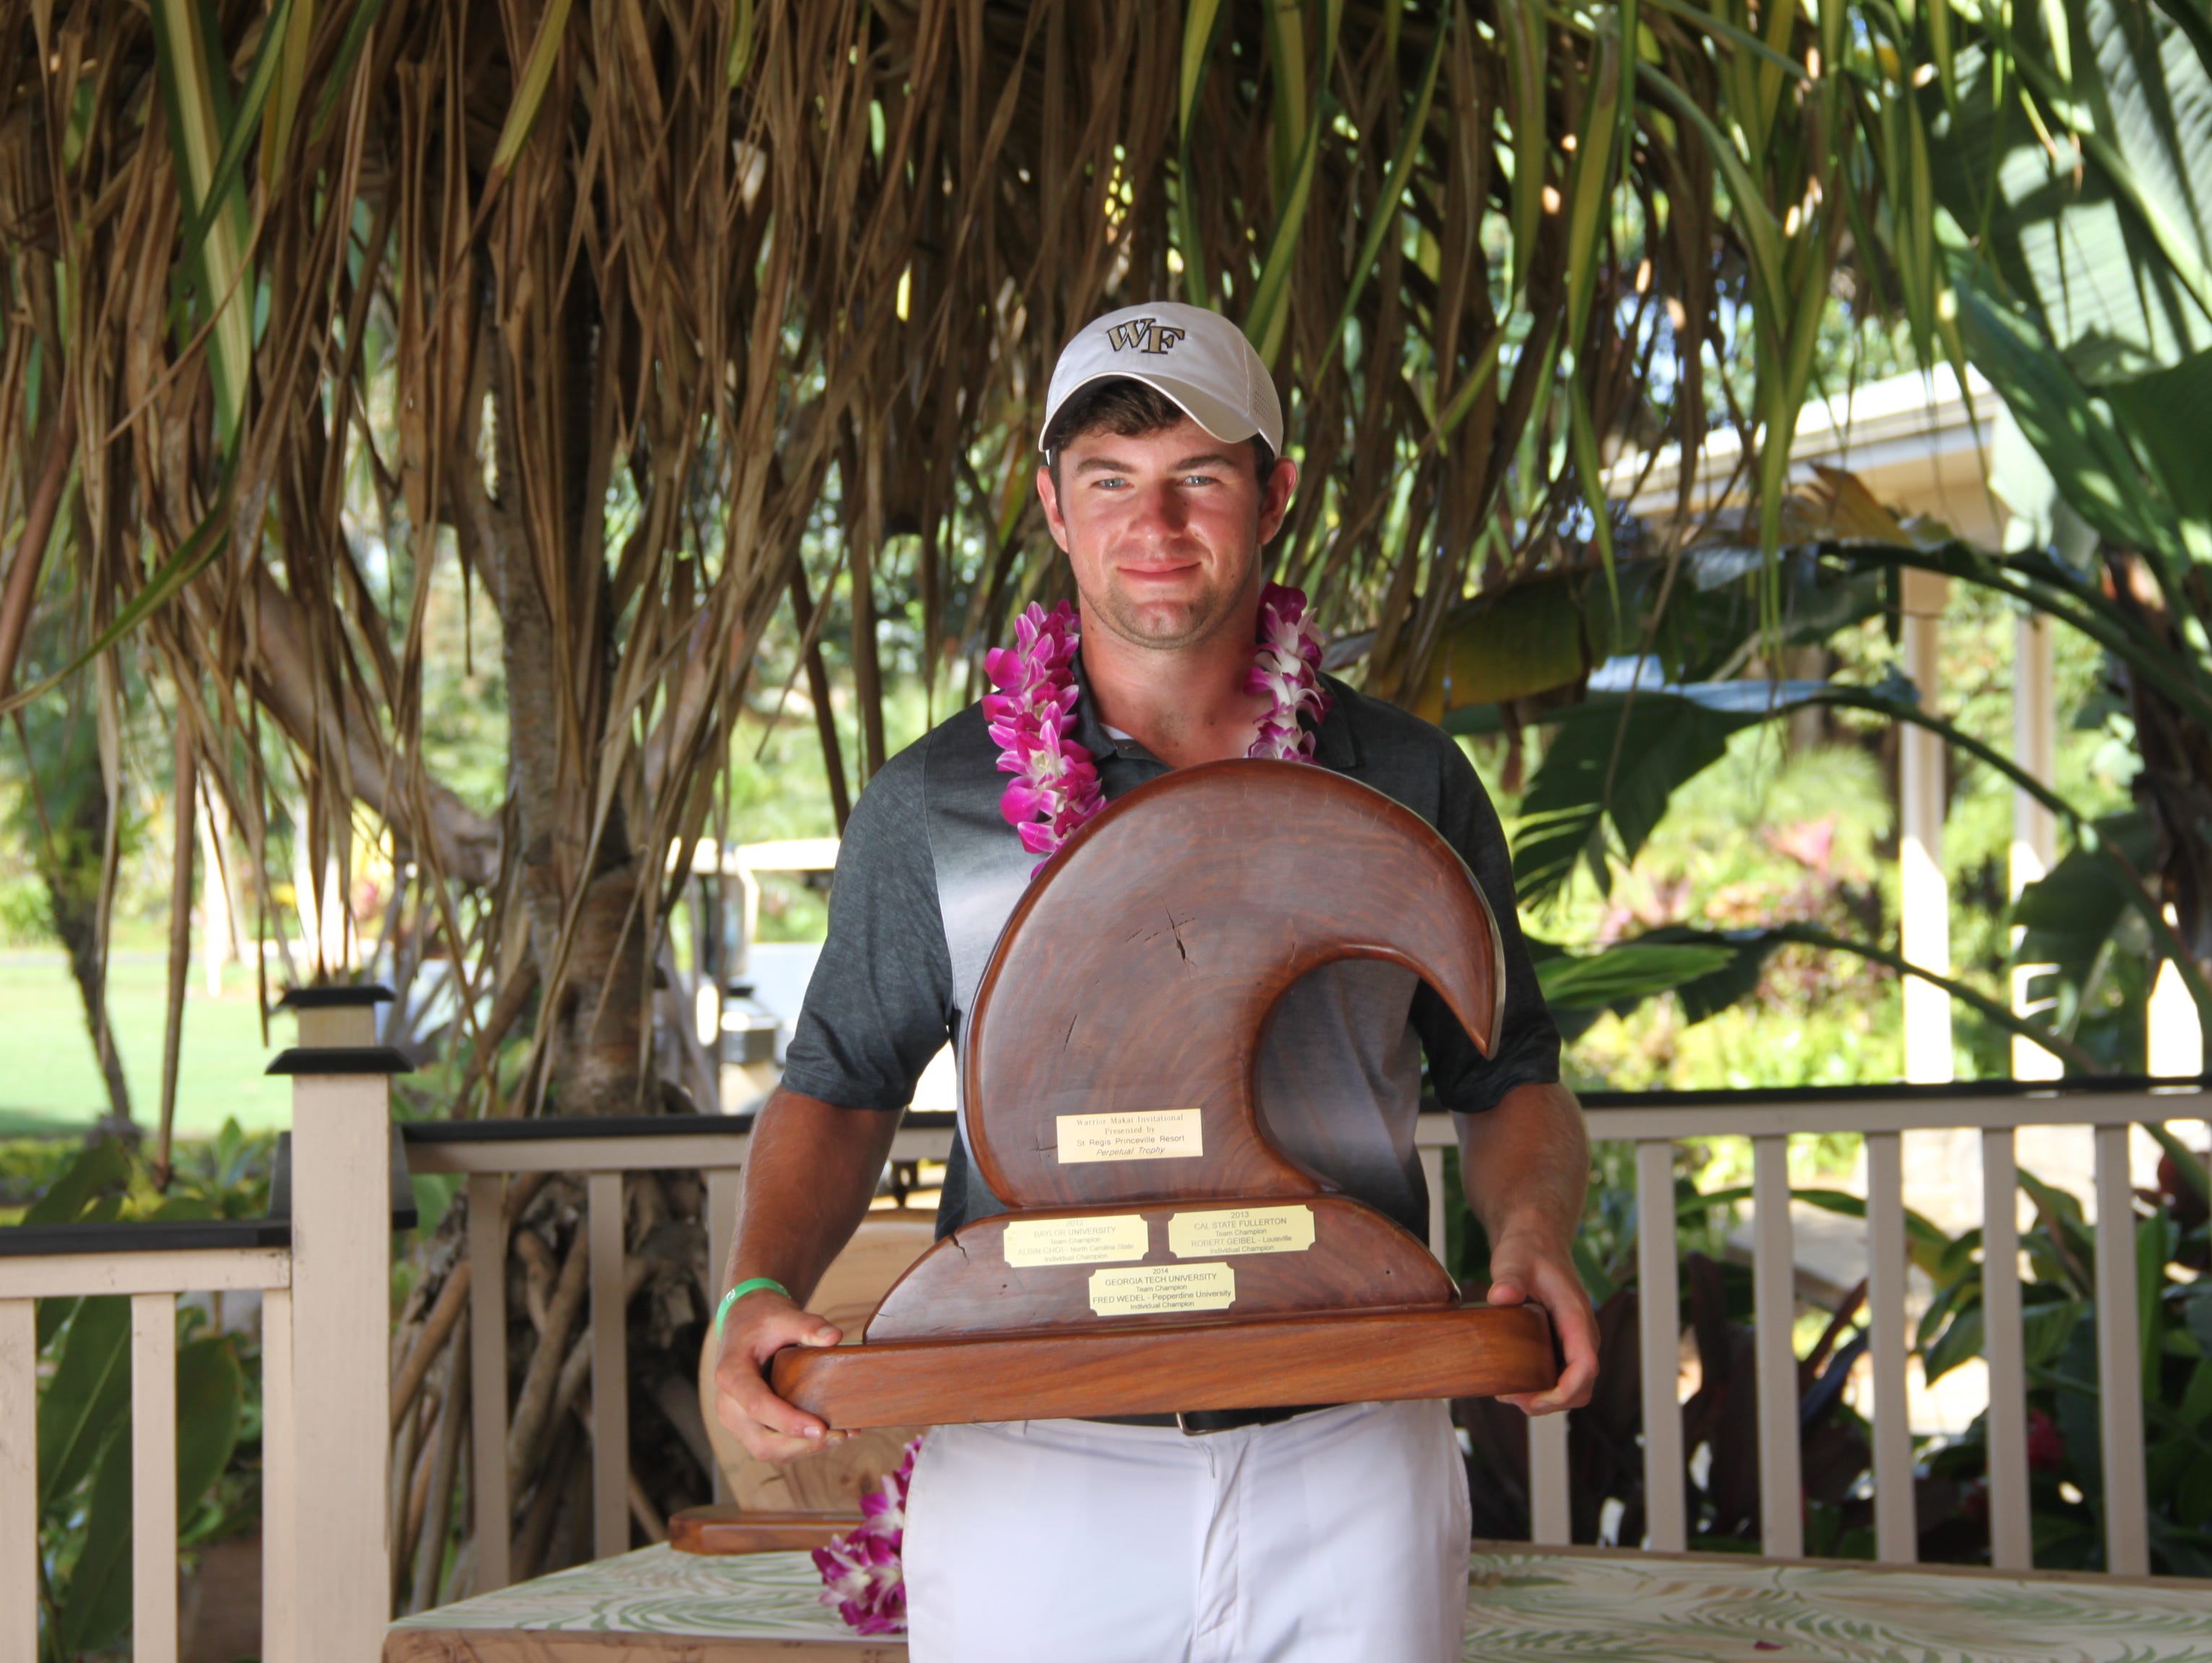 Cameron Young won the Warrior Princeville Makai Invitational in Hawaii last month to close out his first semester of competition at Wake Forest.